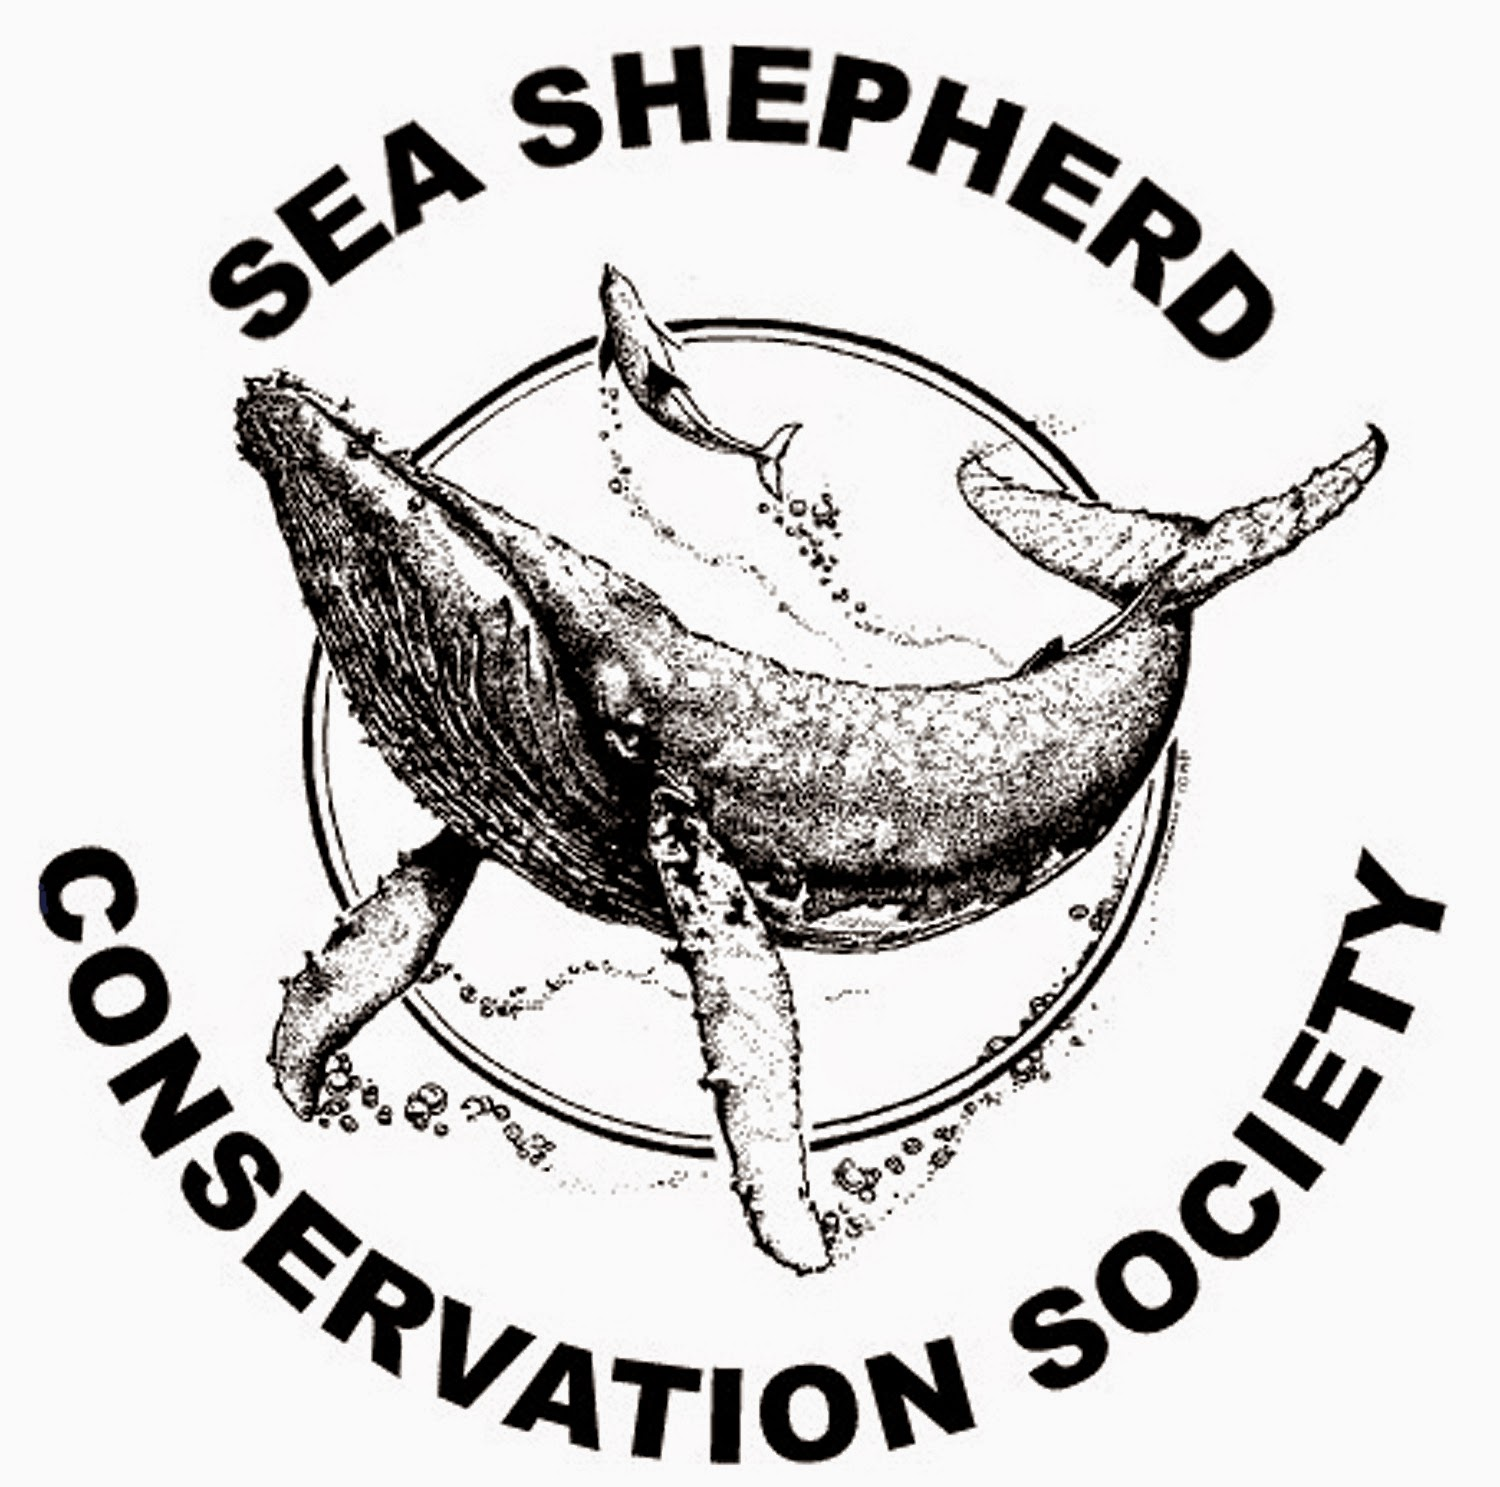 I Support Sea Shepherd